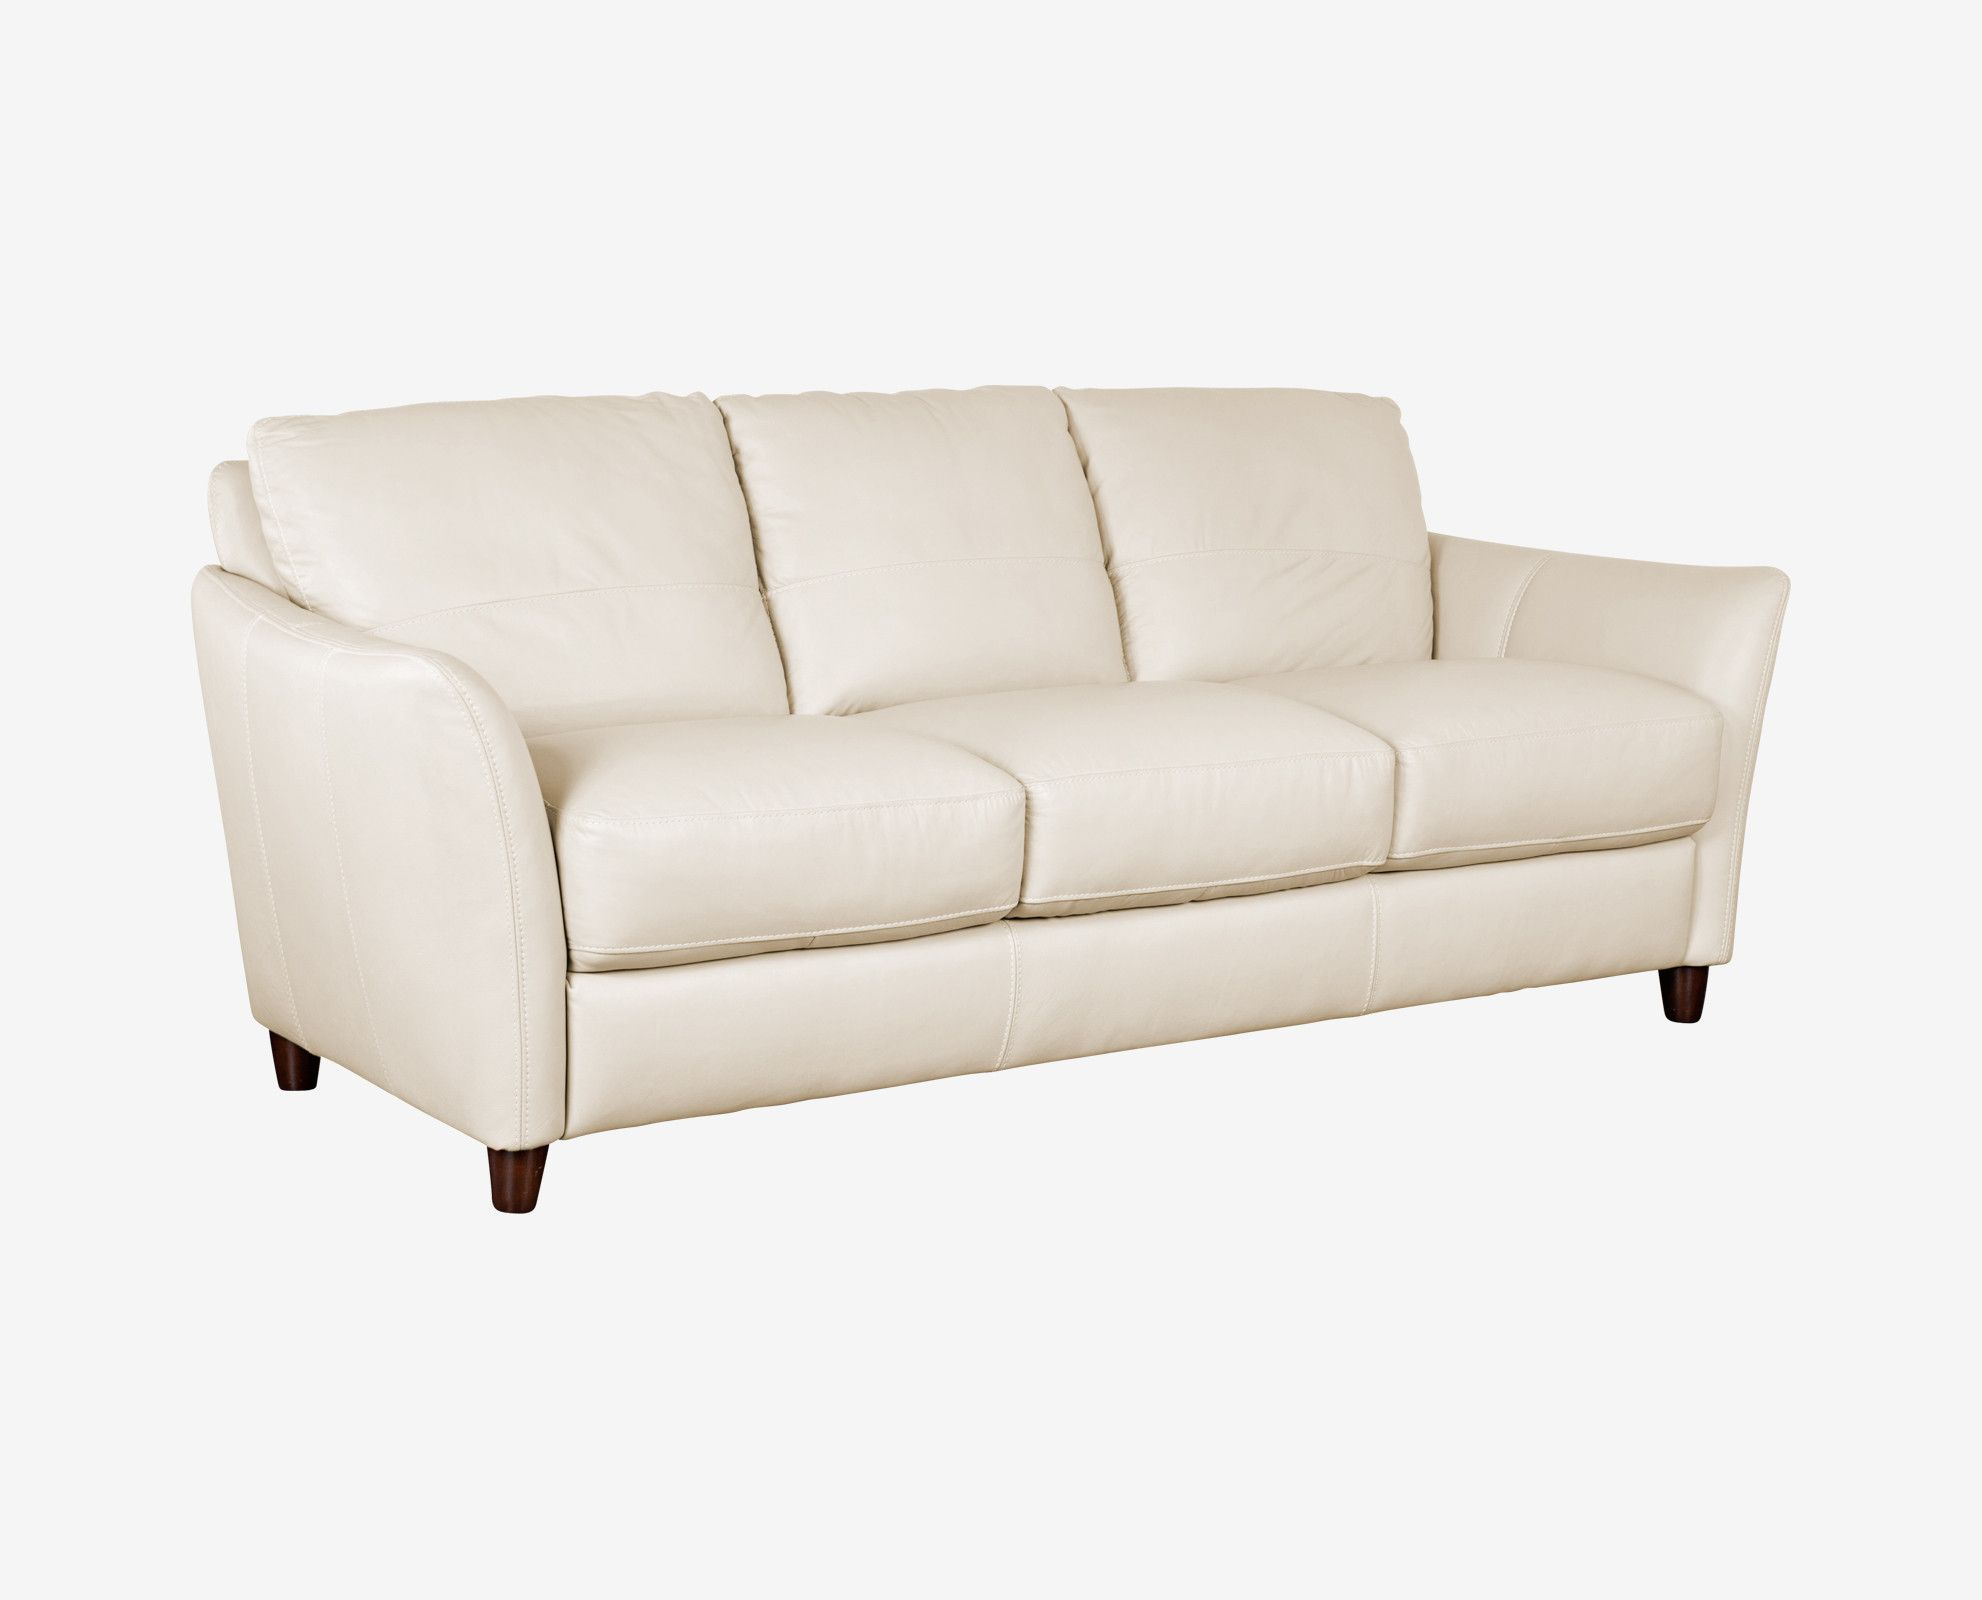 Cillia leather sofa